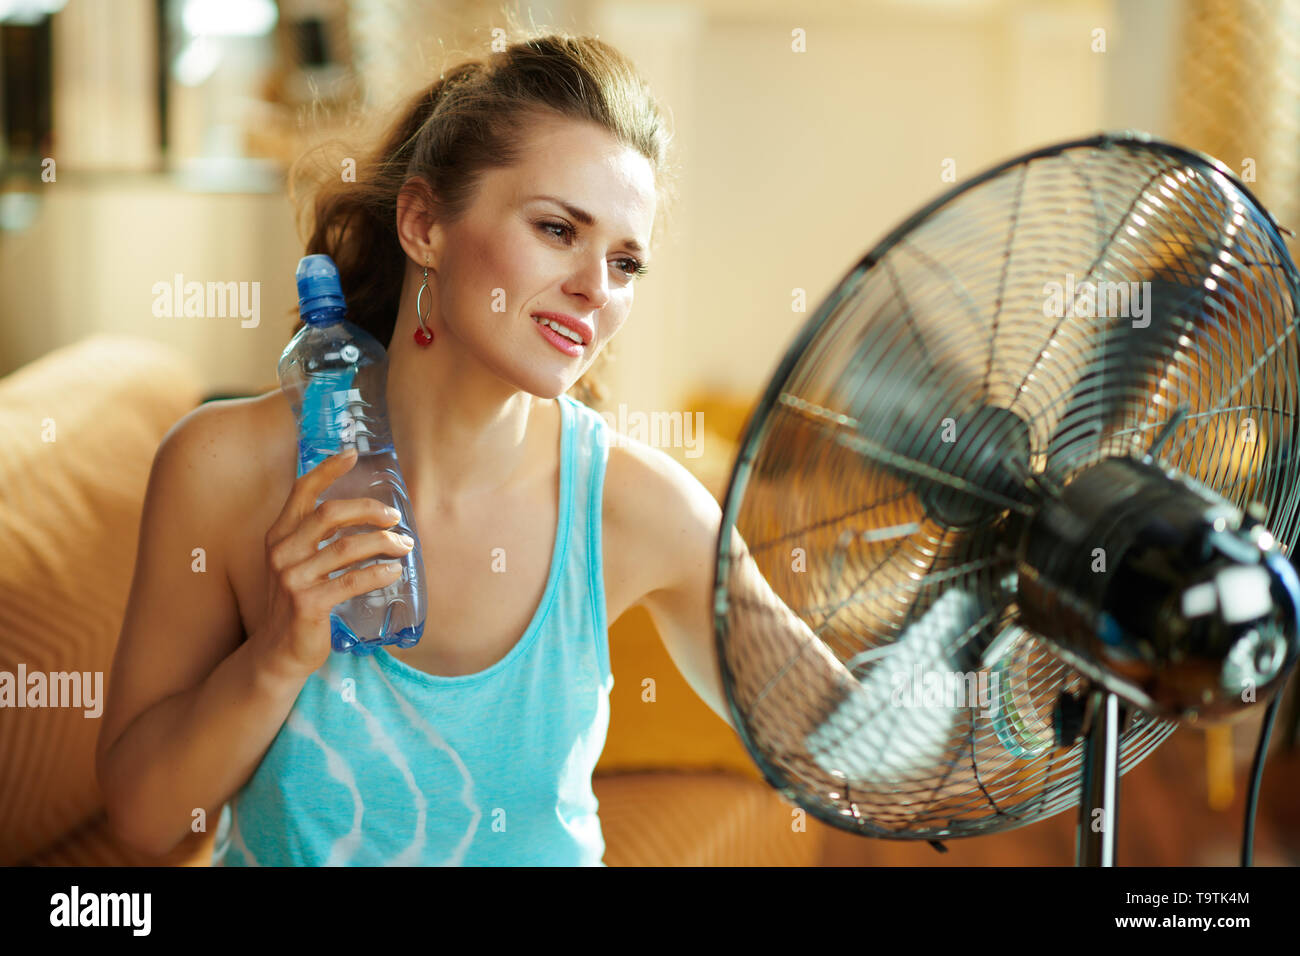 relaxed woman with bottle of cold water enjoying fresh air in the front of working fan at modern home in sunny hot summer day. Stock Photo